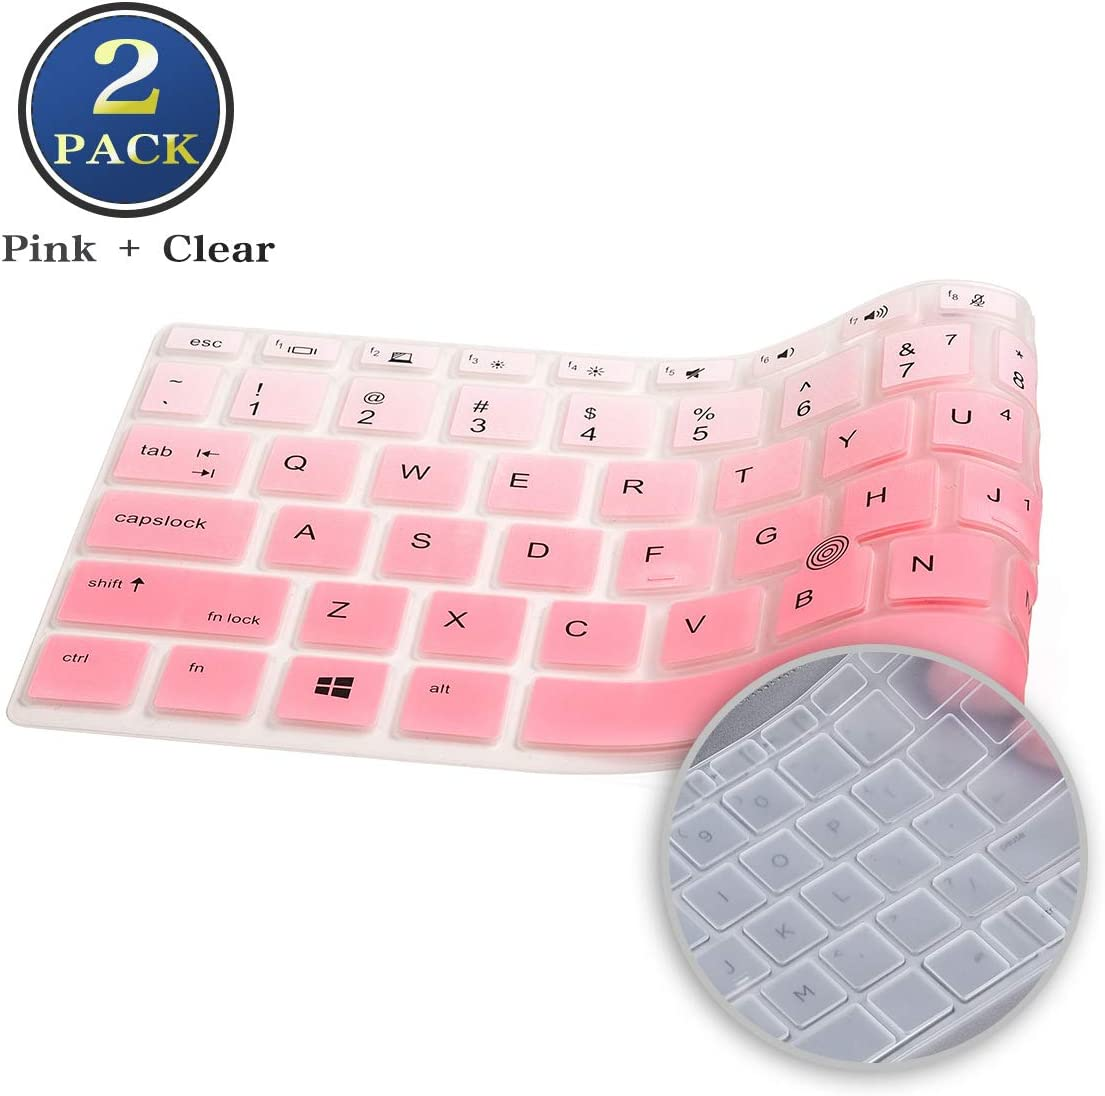 Keyboard Cover for HP EliteBook 14 Inch 840 G5/ G6, HP EliteBook 745 G5 G6 14 Inch, HP ZBook 14u G5 G6, HP EliteBook 840 Keyboard Skin Protector (Ombre Pink+Clear)